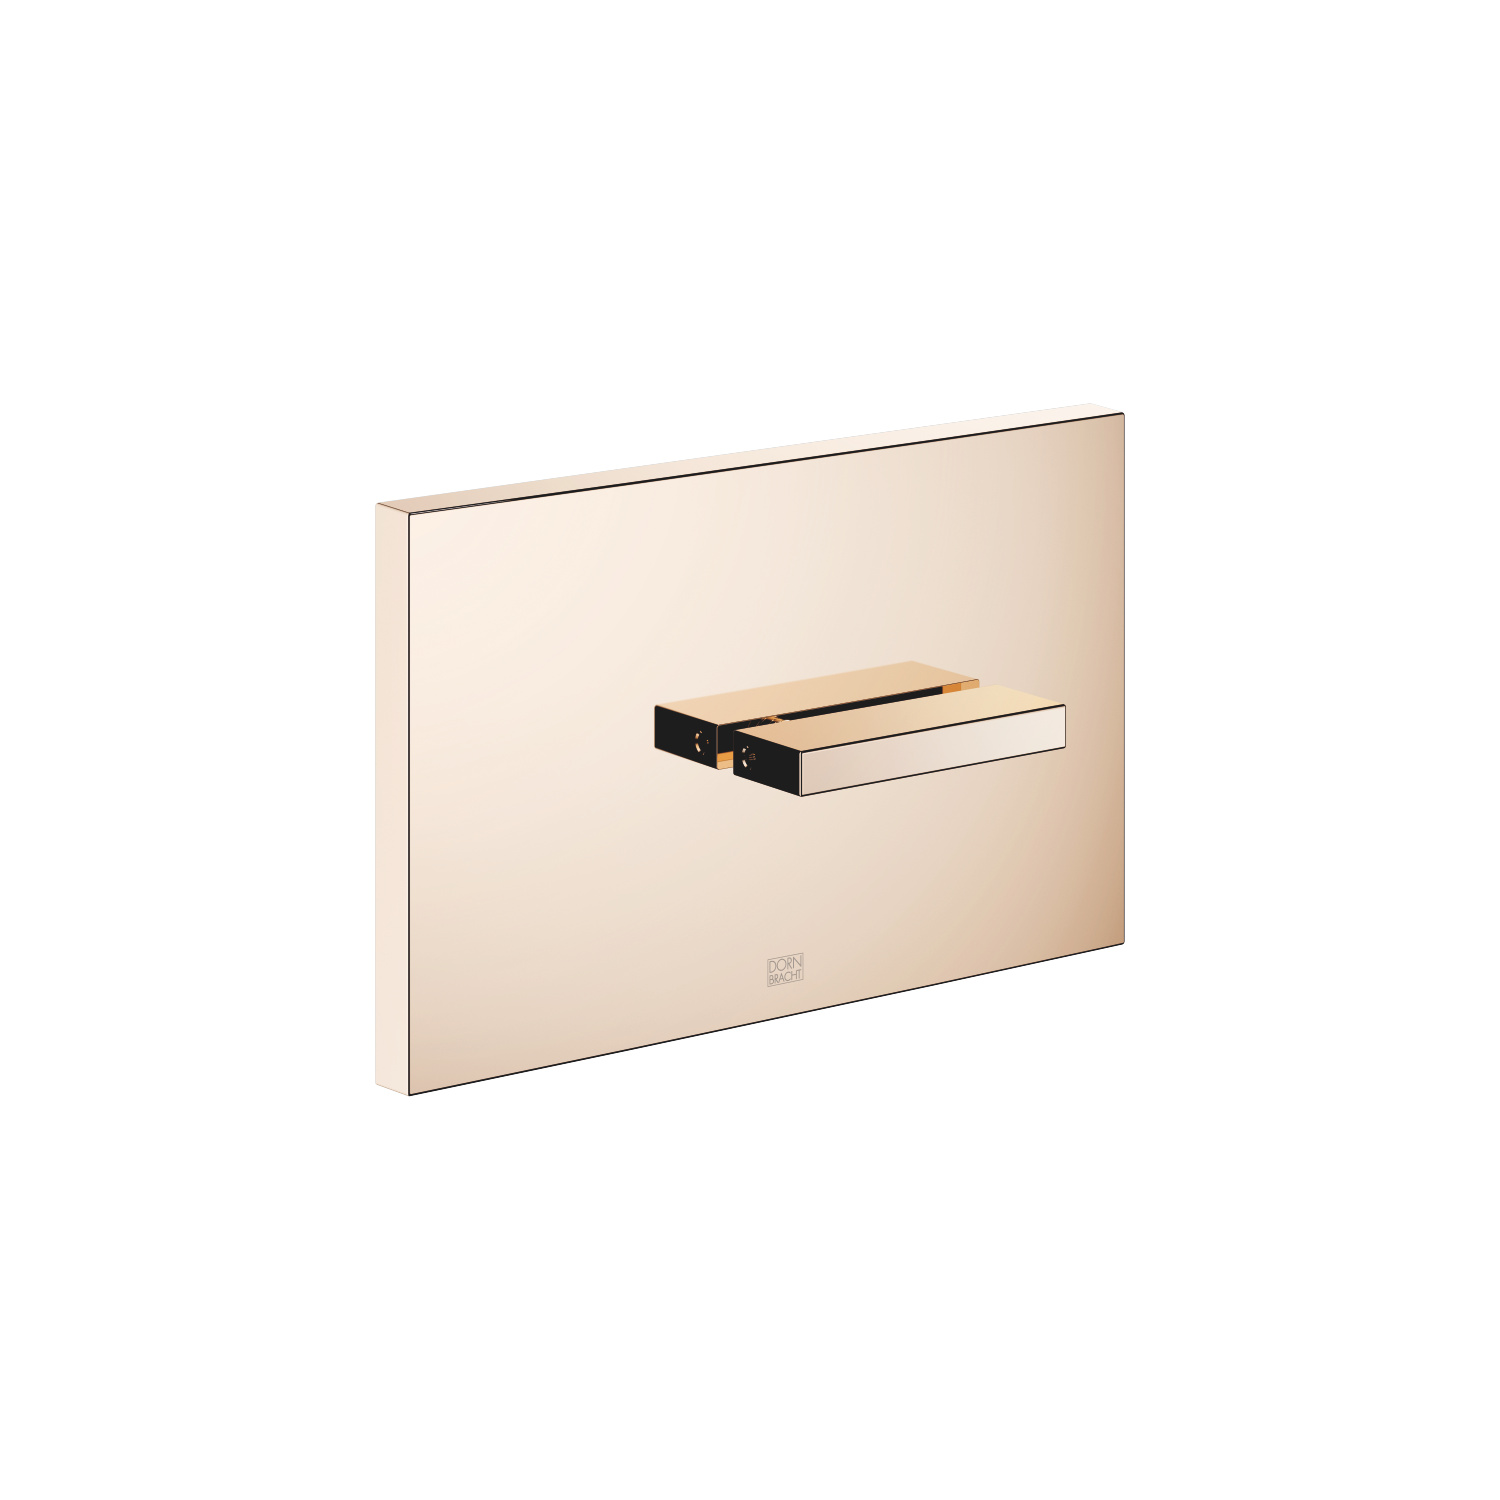 Cover plate for the concealed WC cistern made by TeCe - Champagne